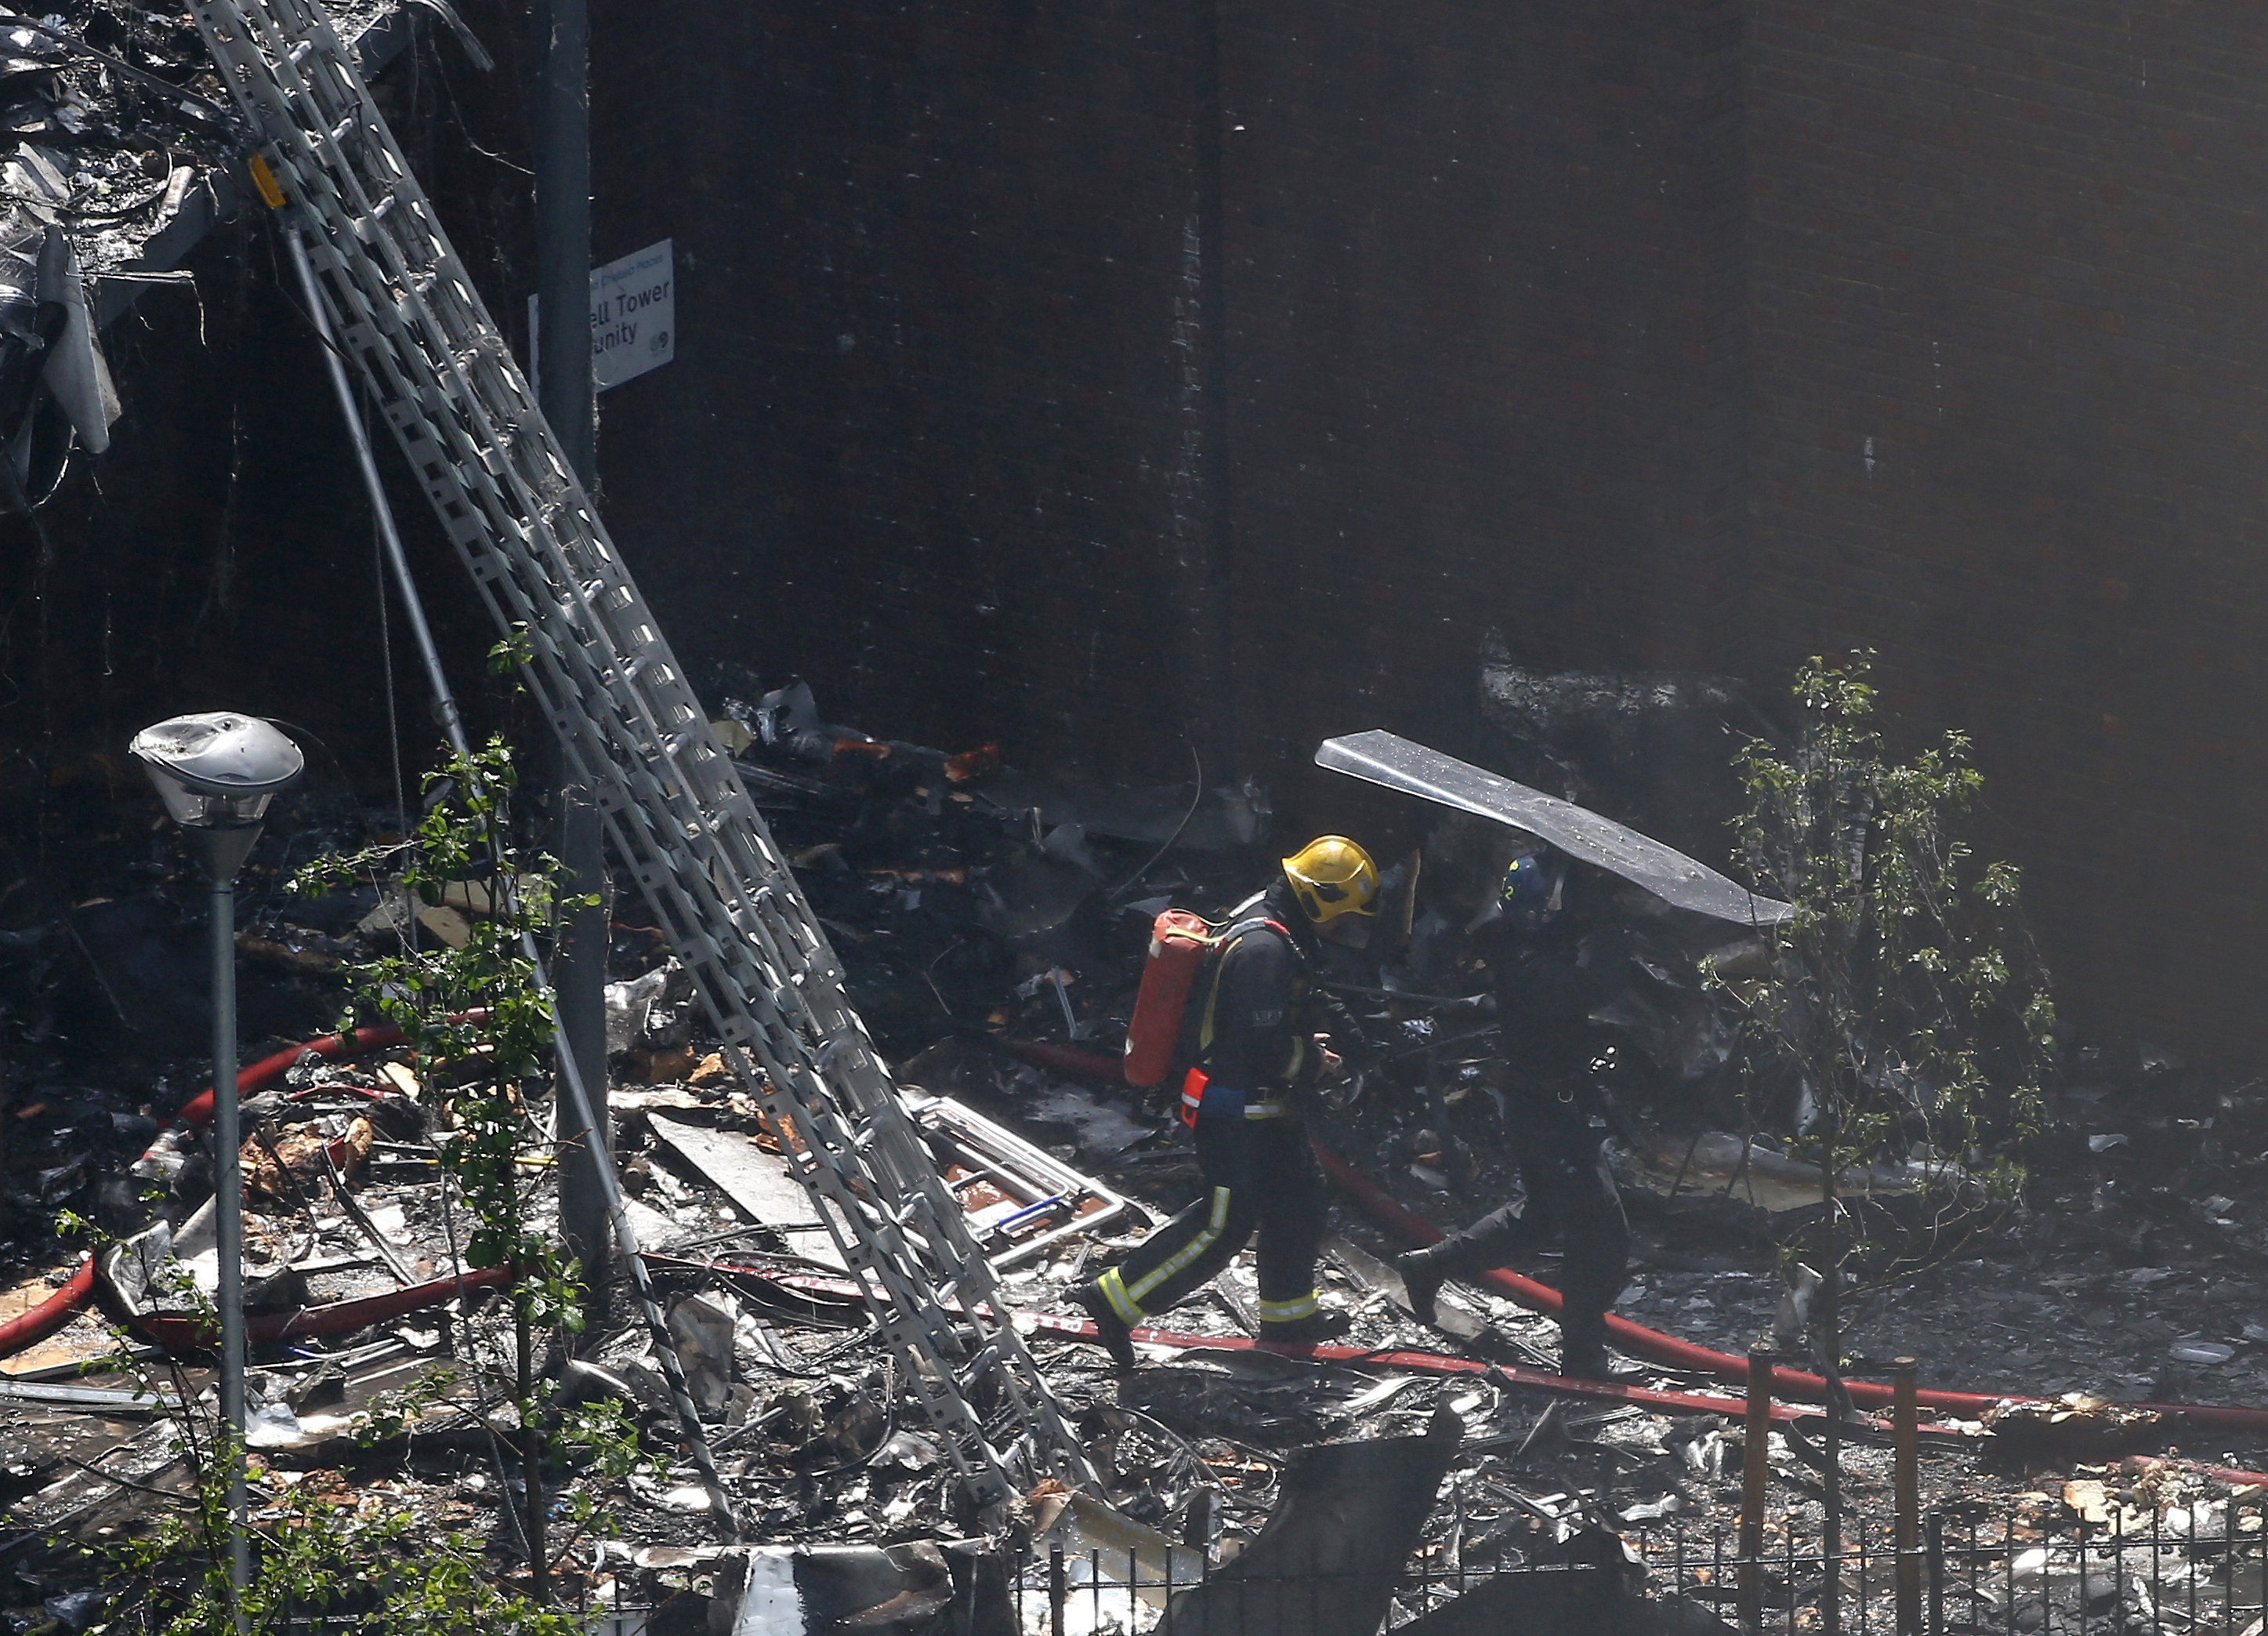 A police officer holds a riot shield over a firefighter at a tower block severely damaged by a fire in West London, Britain on June 14, 2017. (REUTERS/Neil Hall)